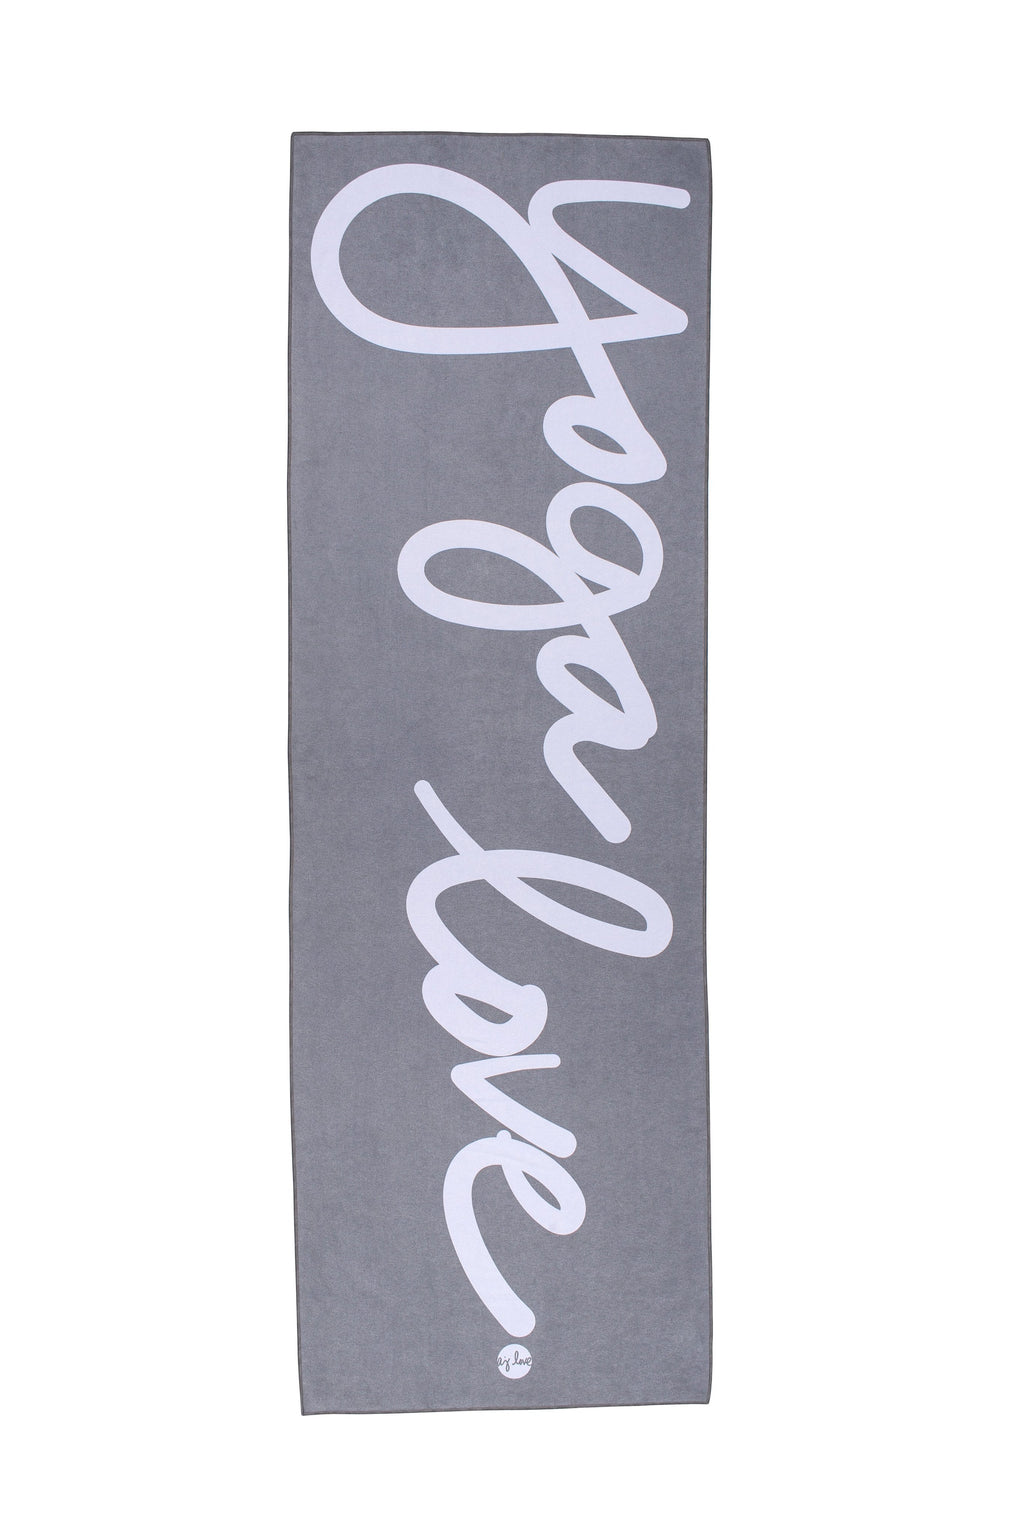 The Yoga Love Yoga Towel